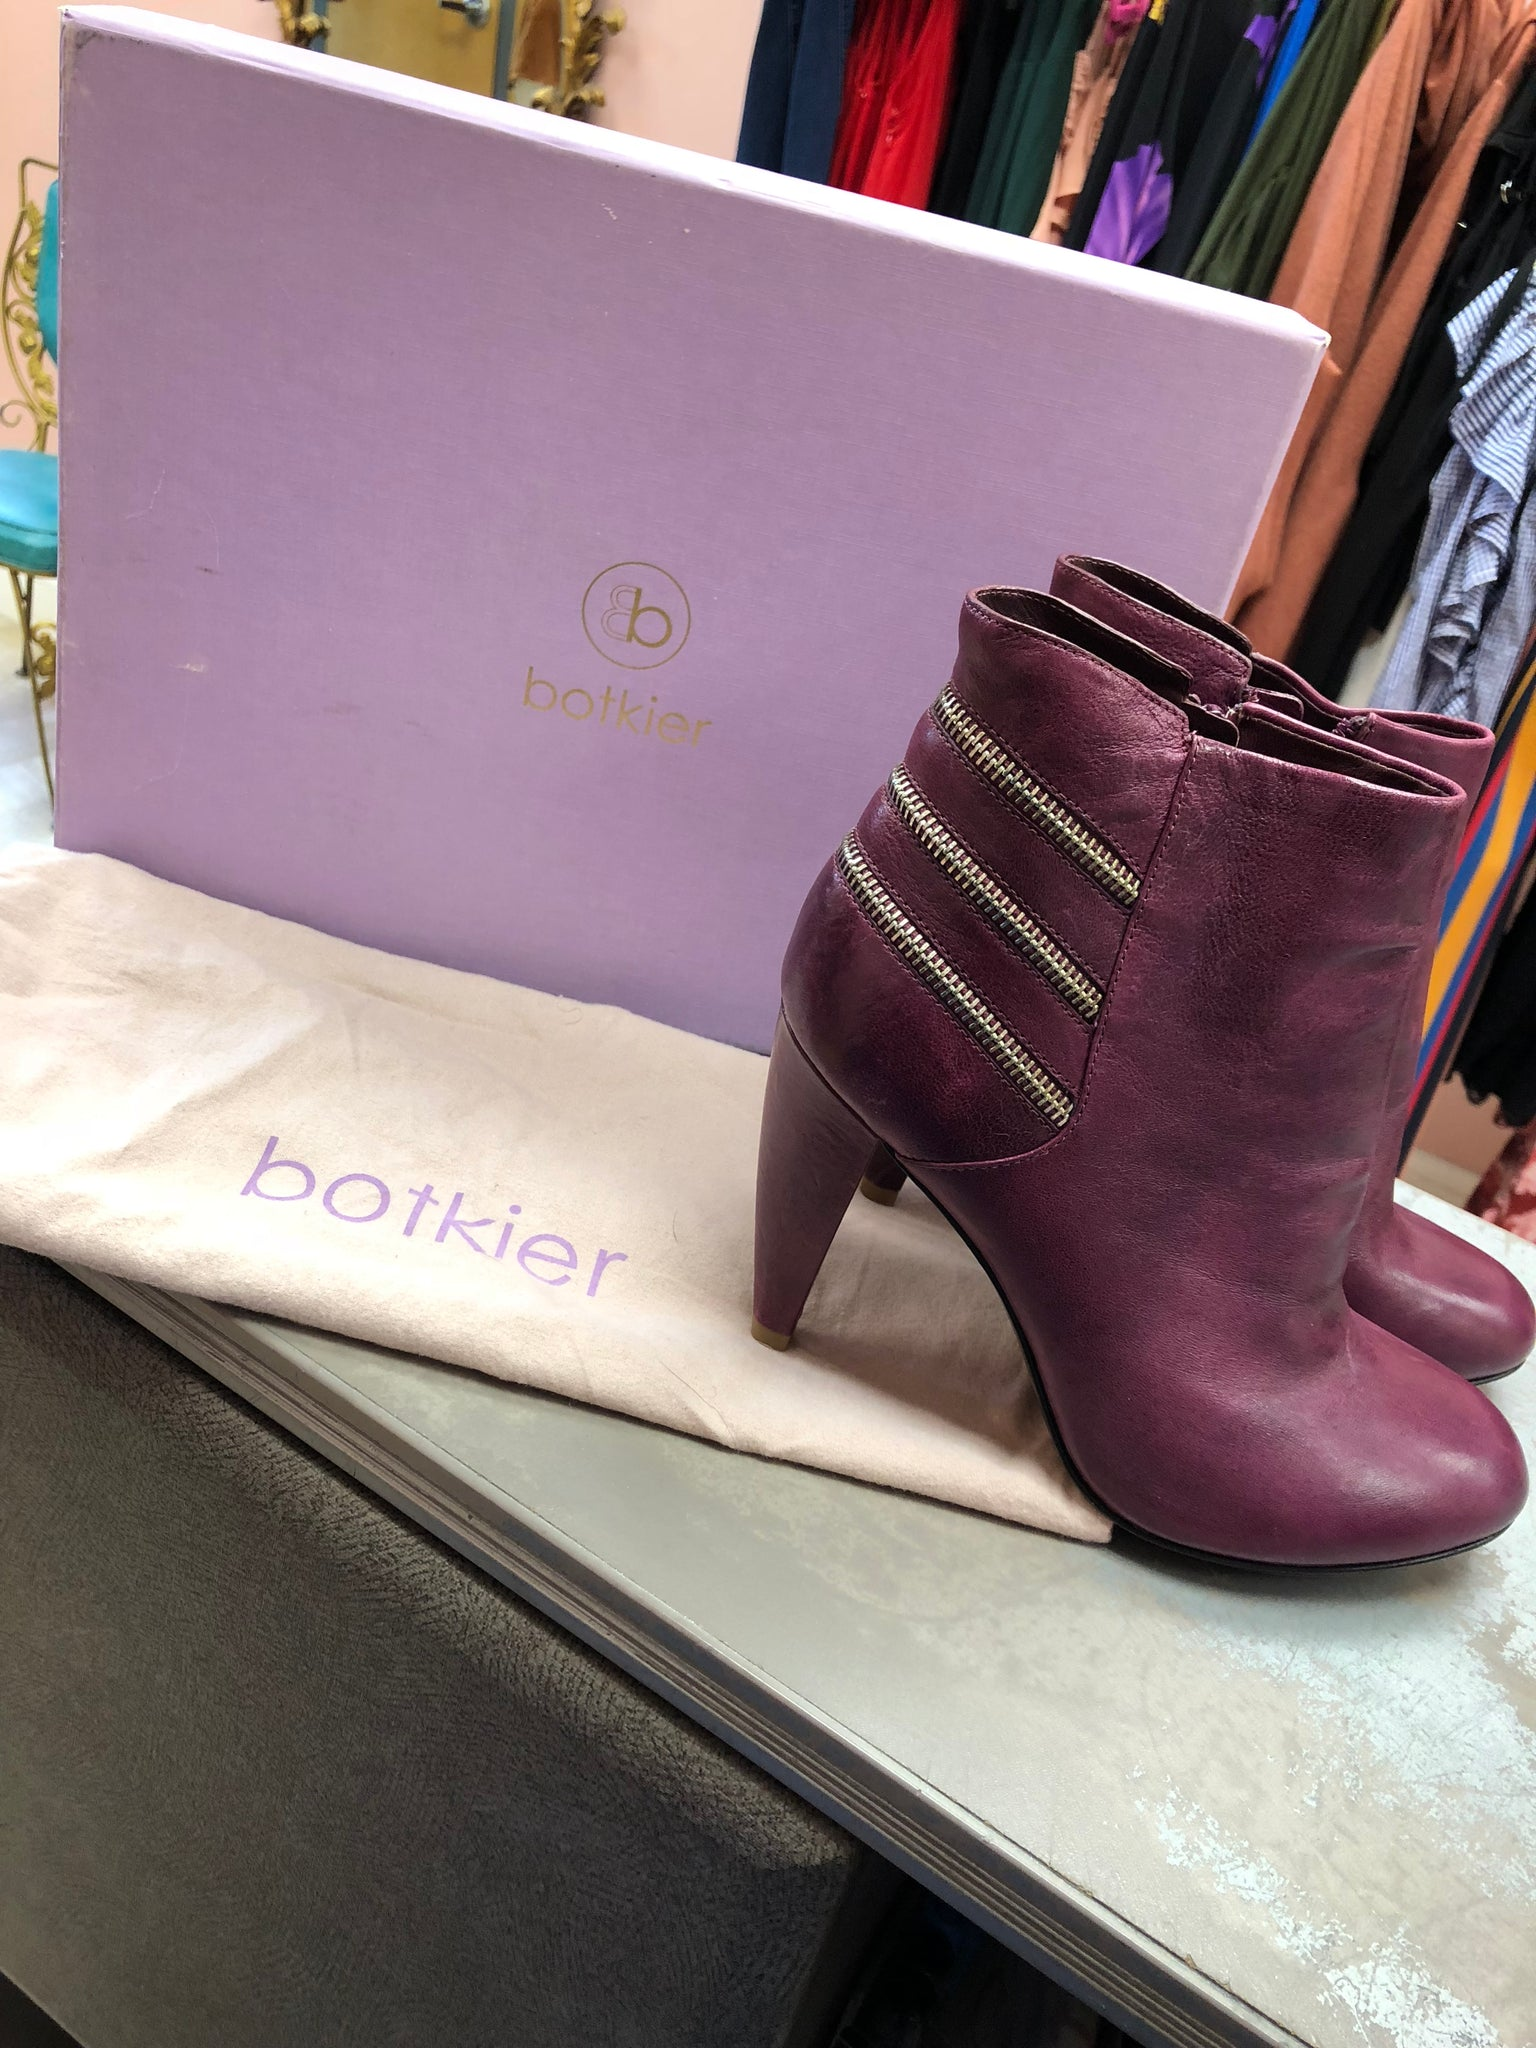 Botkier Booties Size 39.5 US Size 9